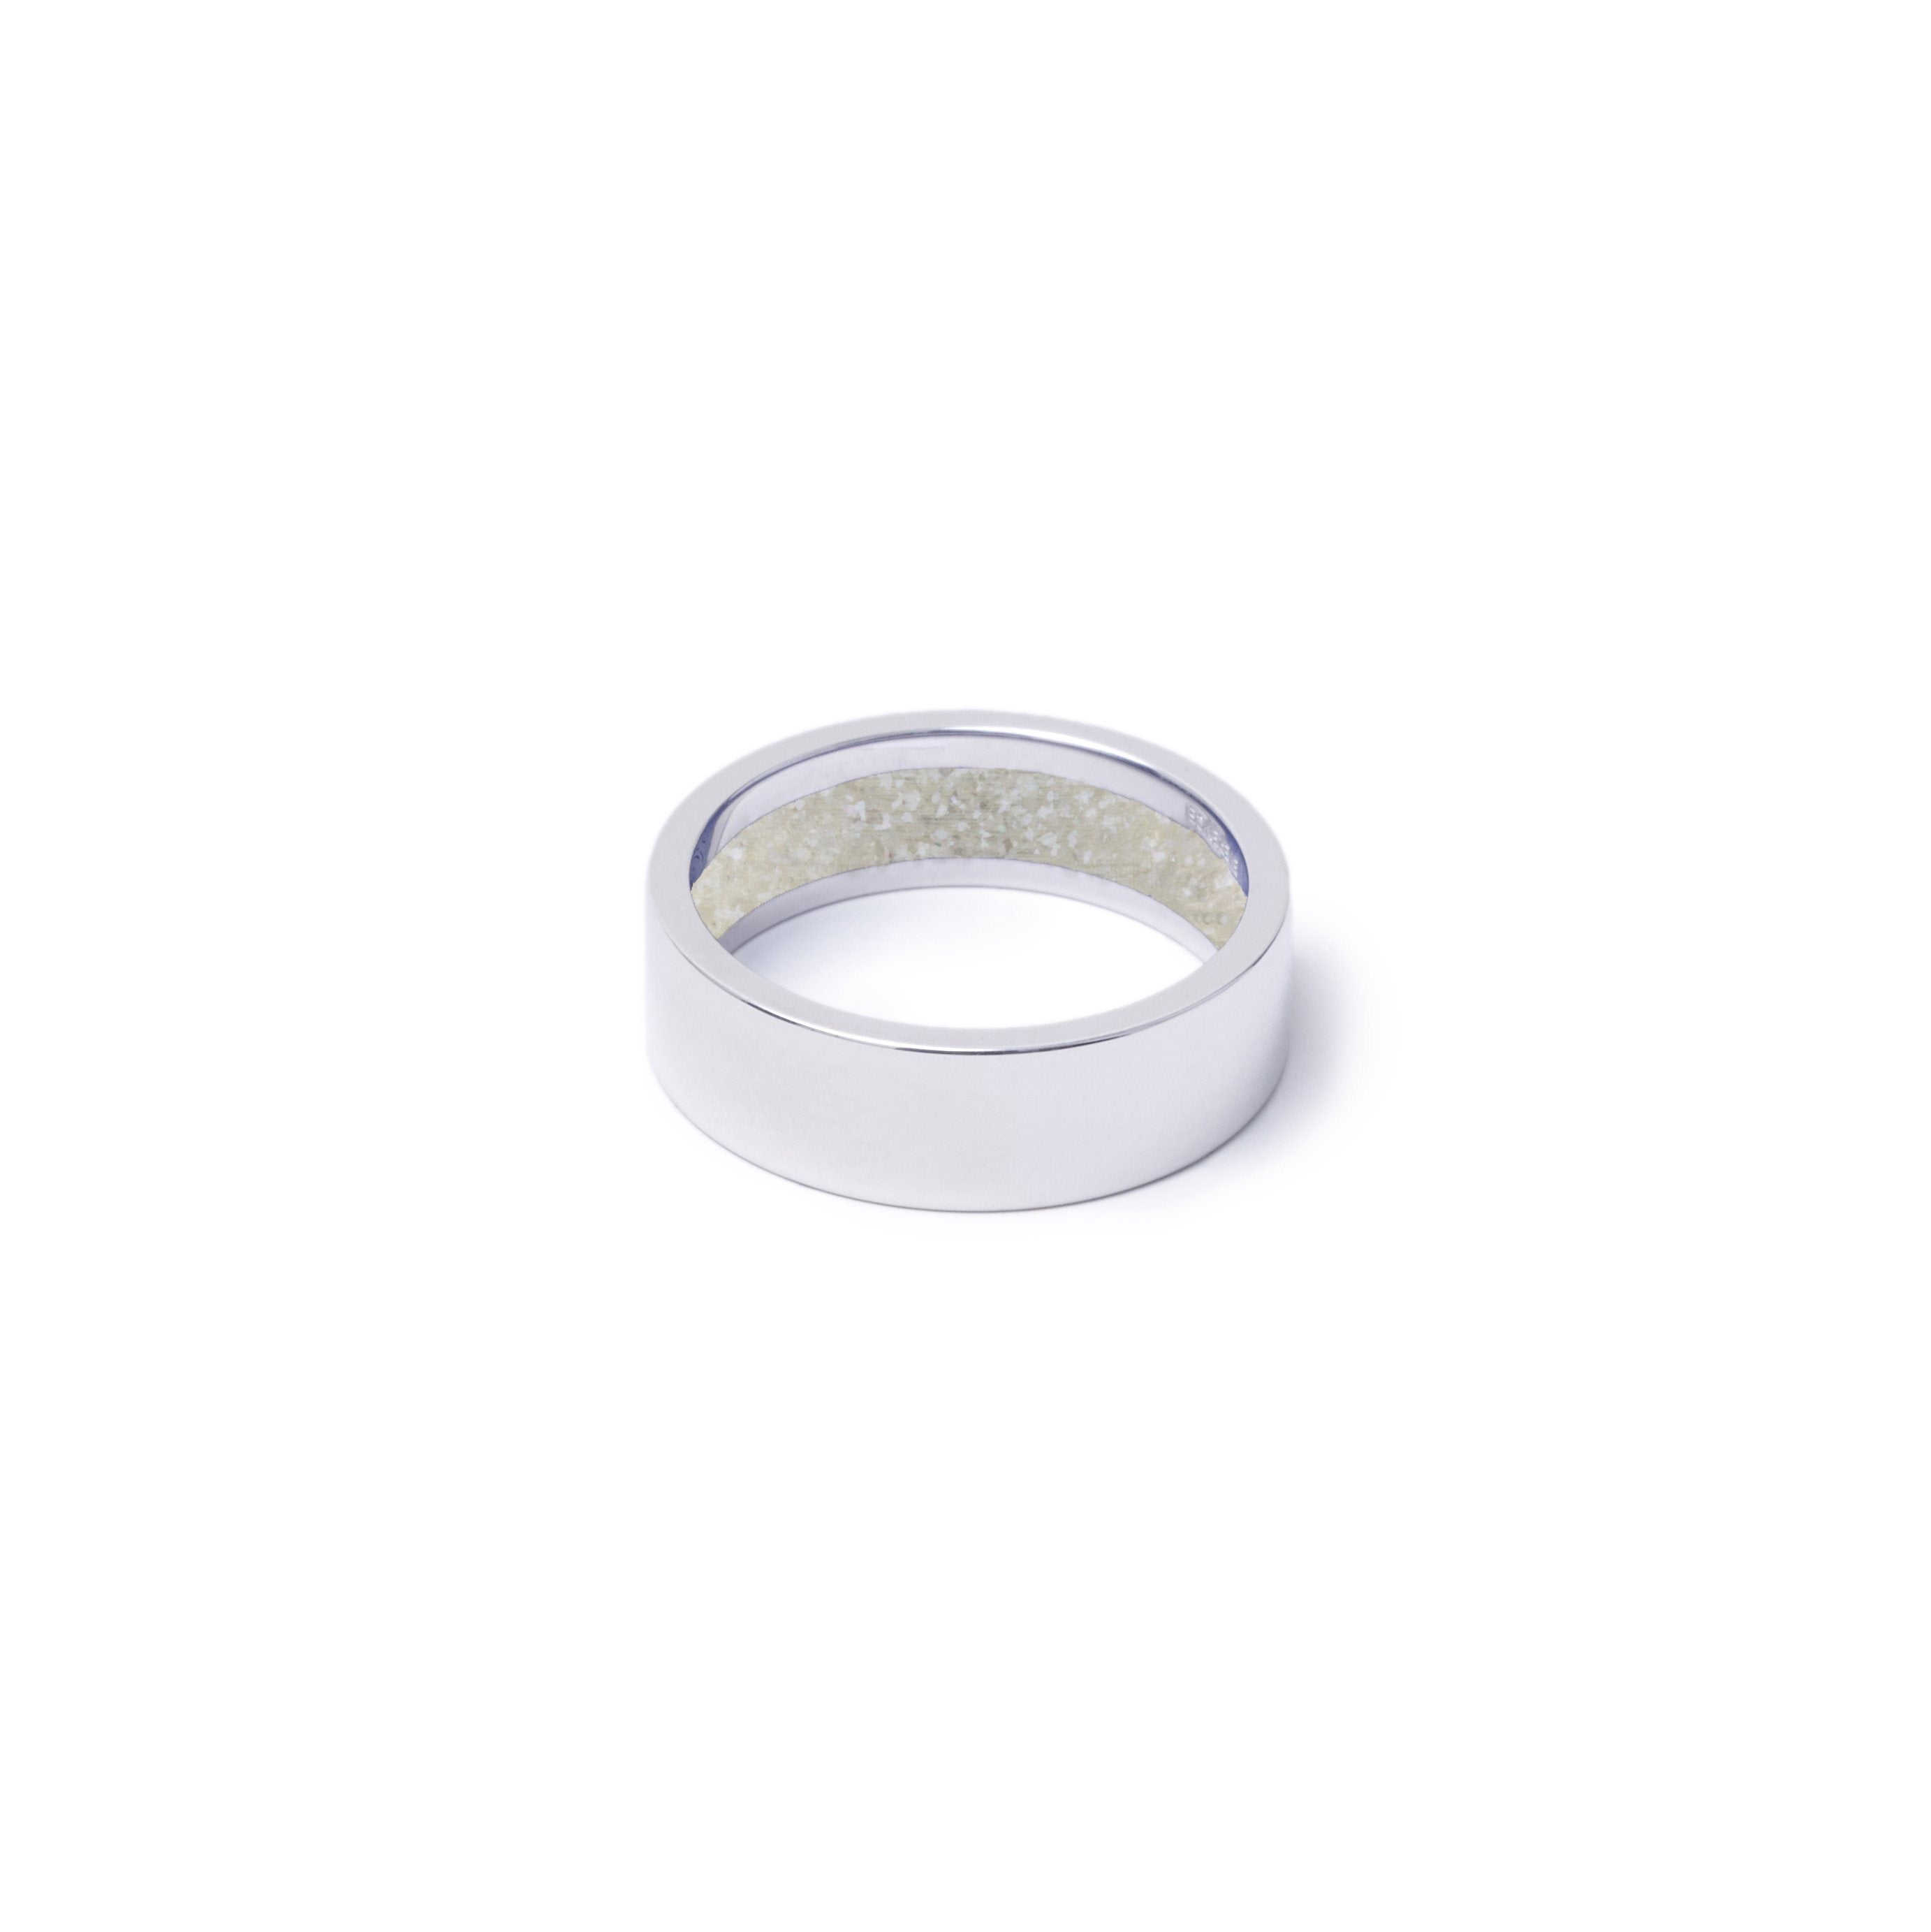 Everence Ring, 10k White Gold everence.life 6mm Pearl